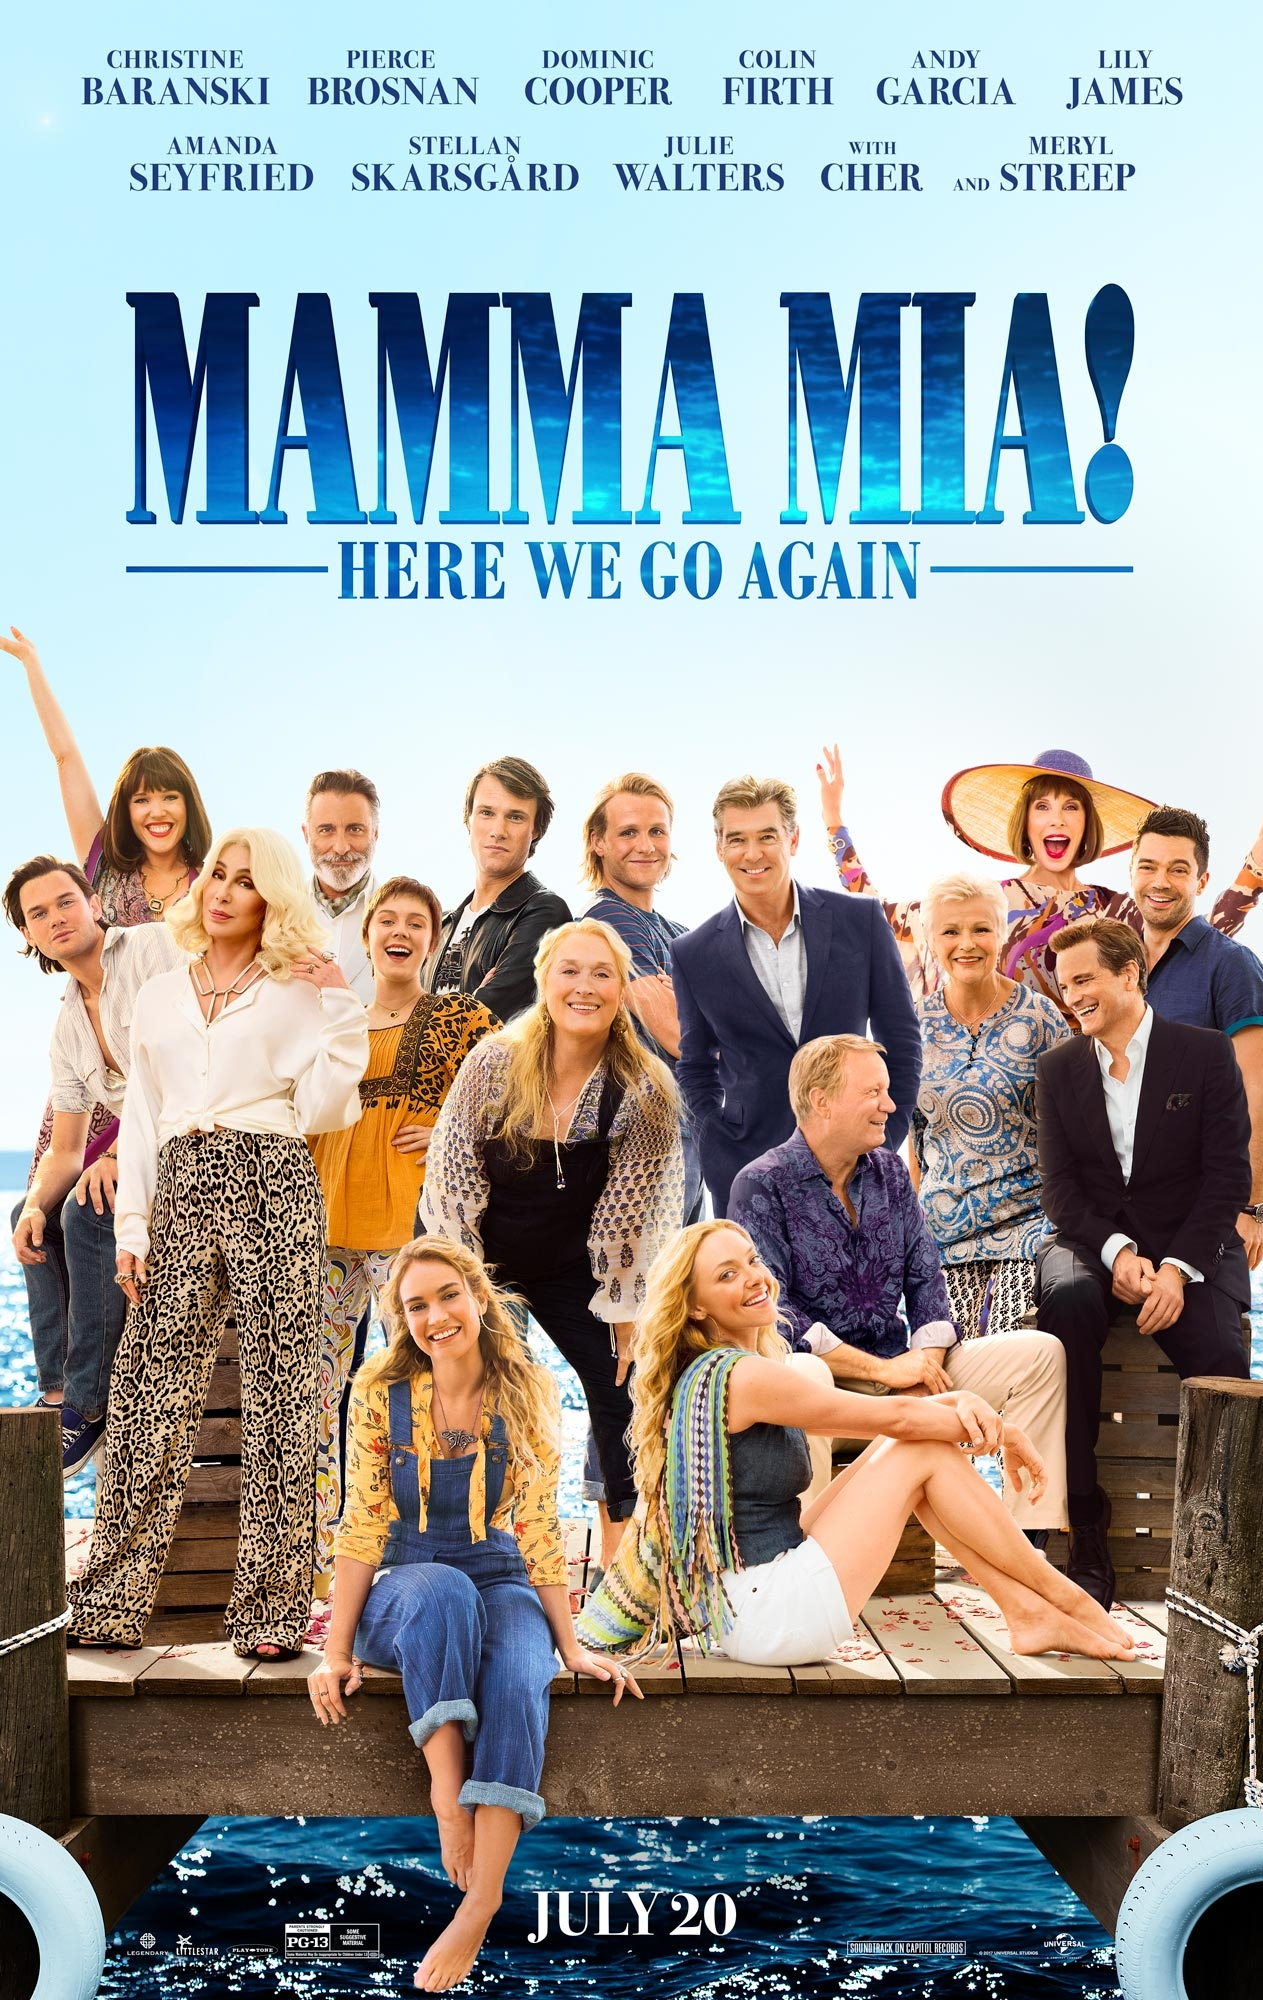 Mamma Mia! Here We Go Again - Poster 1